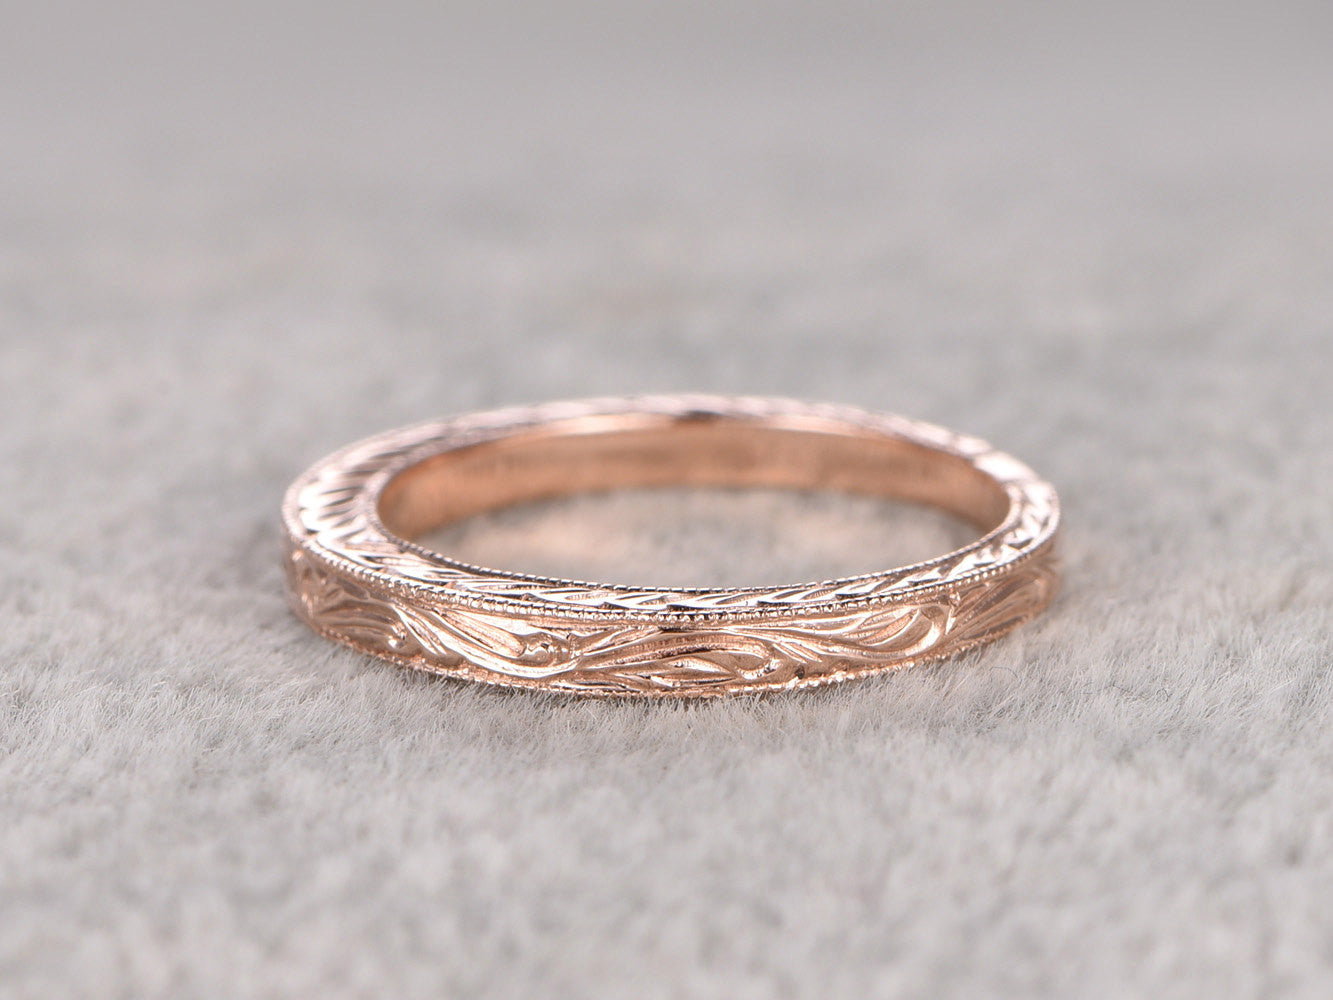 Art deco,Eternity Infinity Wedding Ring,Solid 14K Rose gold,Anniversary Ring,Filigree Floral style,stacking,milgrain,Matching band